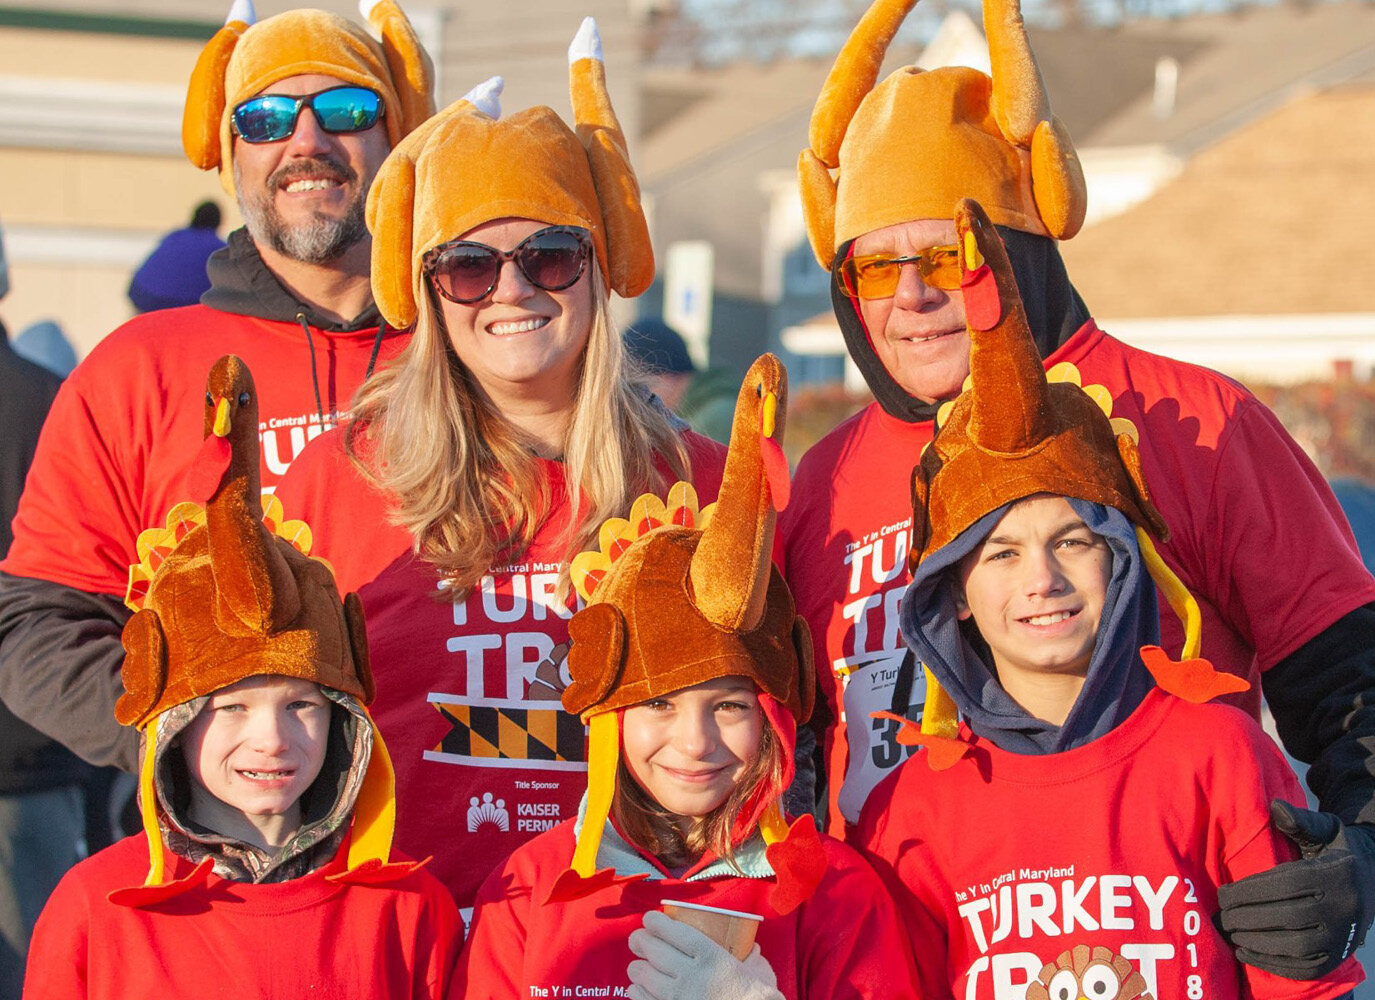 TurkeyTrotPhotoSelection_330x240PX8 (1).jpg